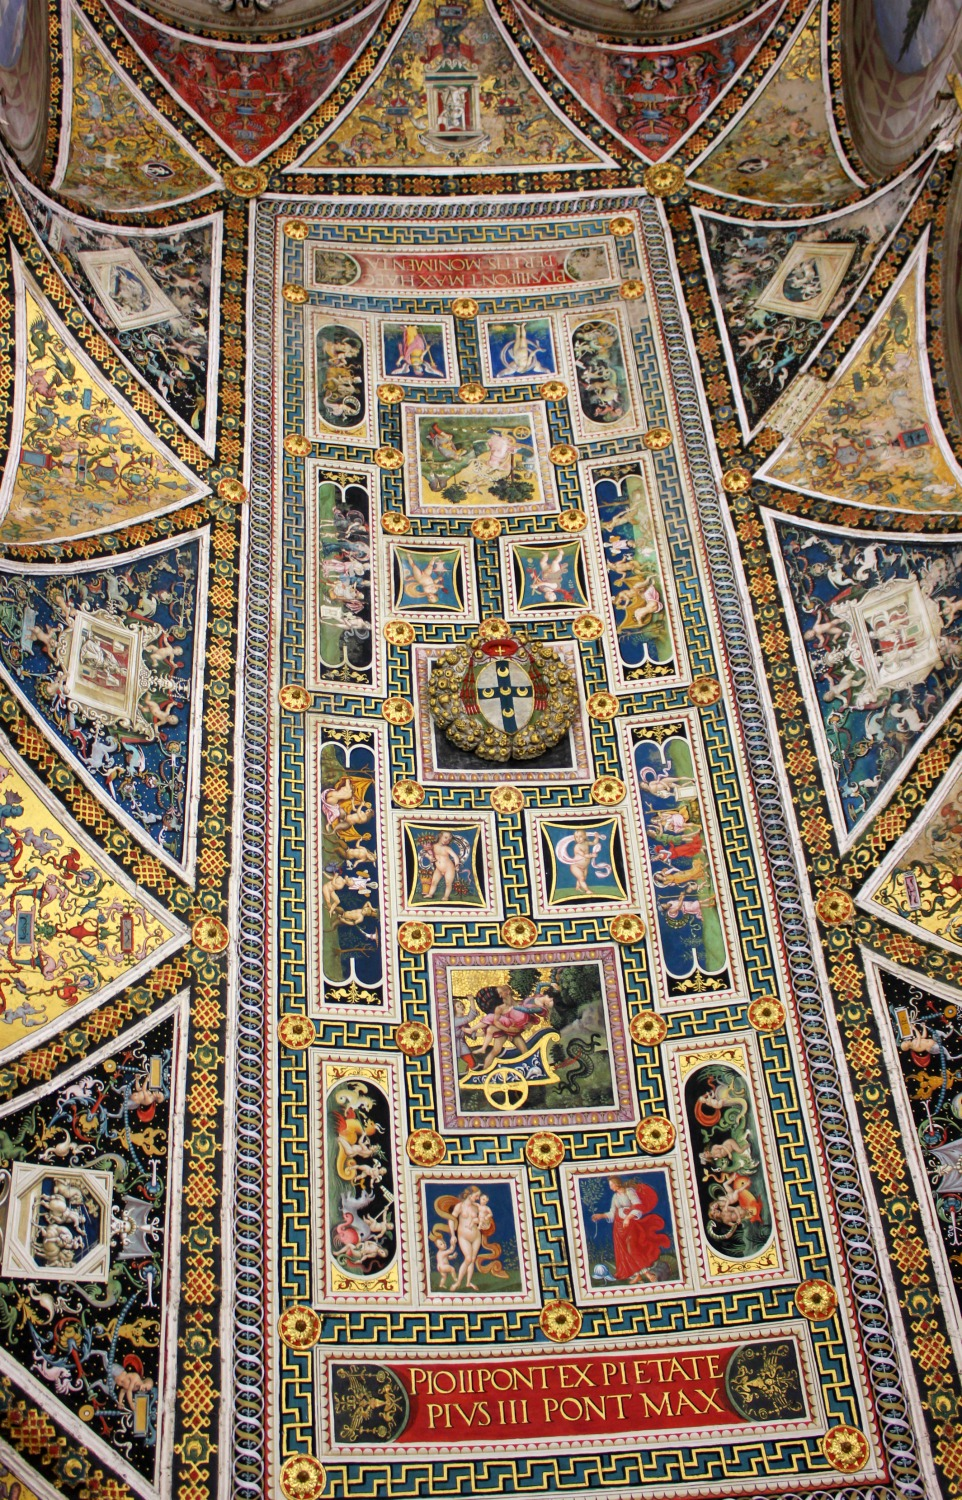 Ceiling of the library in the cathedral - exploring Siena with kids, our tour discovering art, history and animals